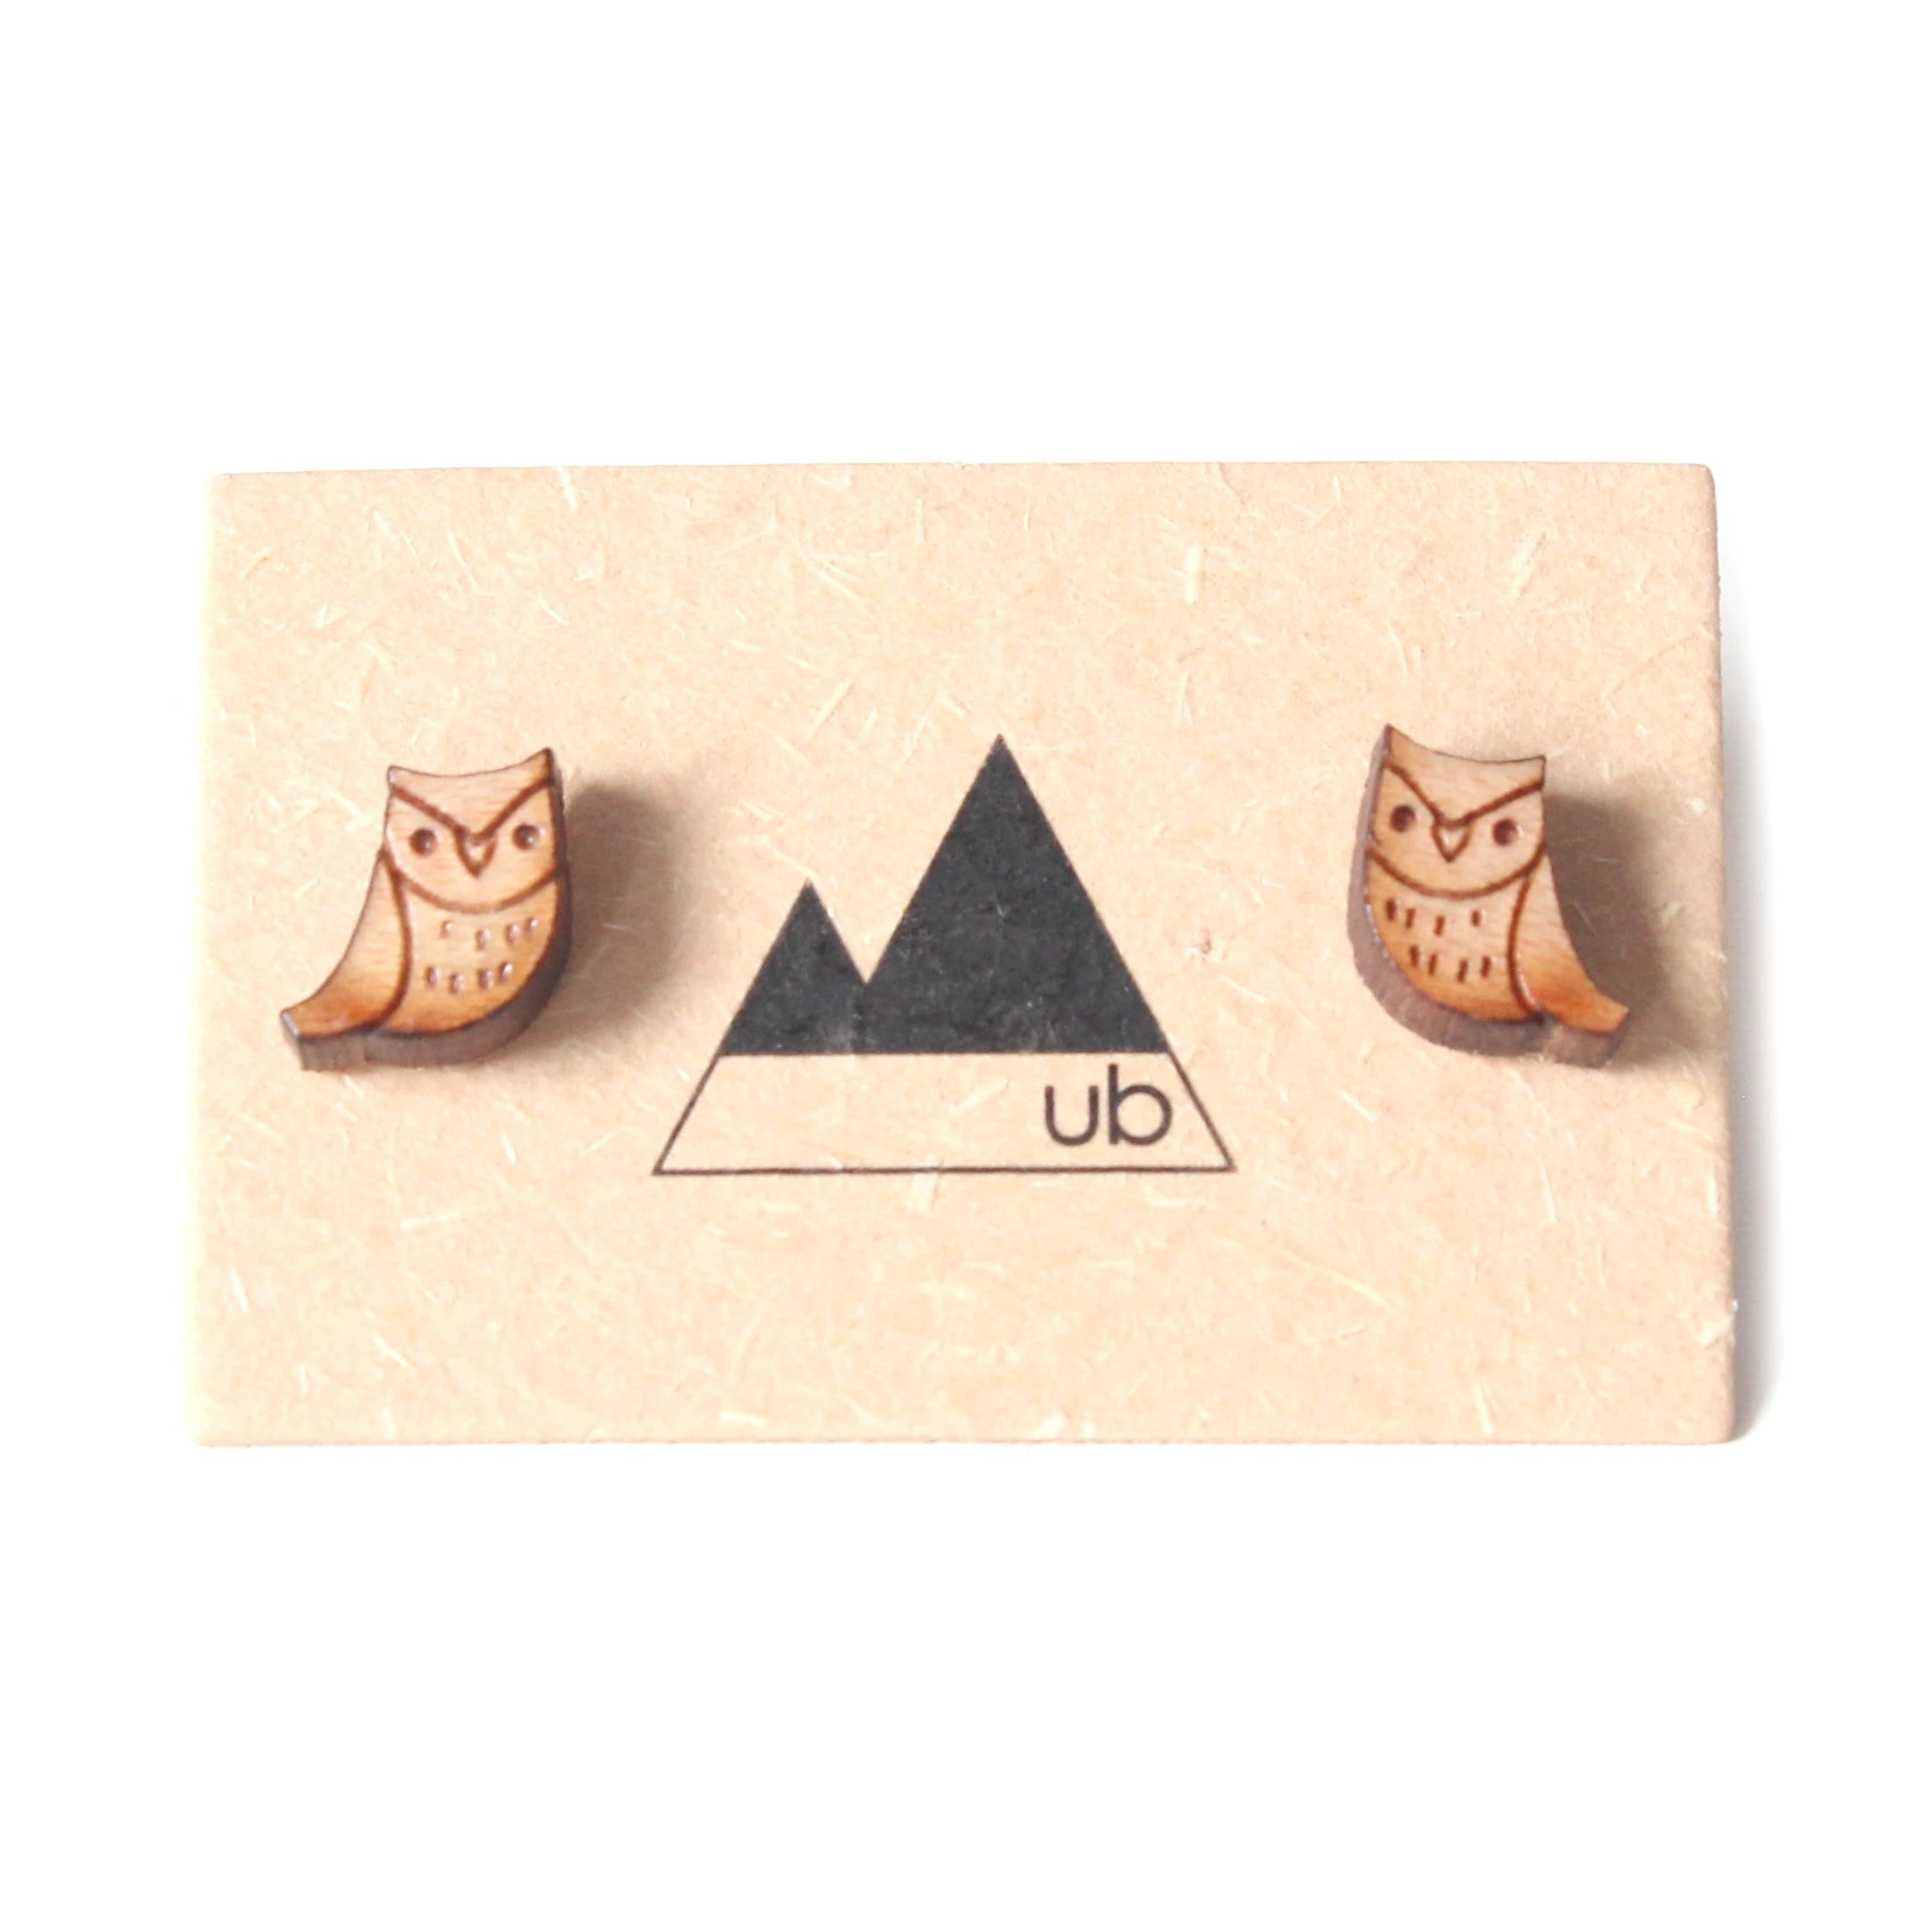 Owl Stud Earrings - Ugly Bunny